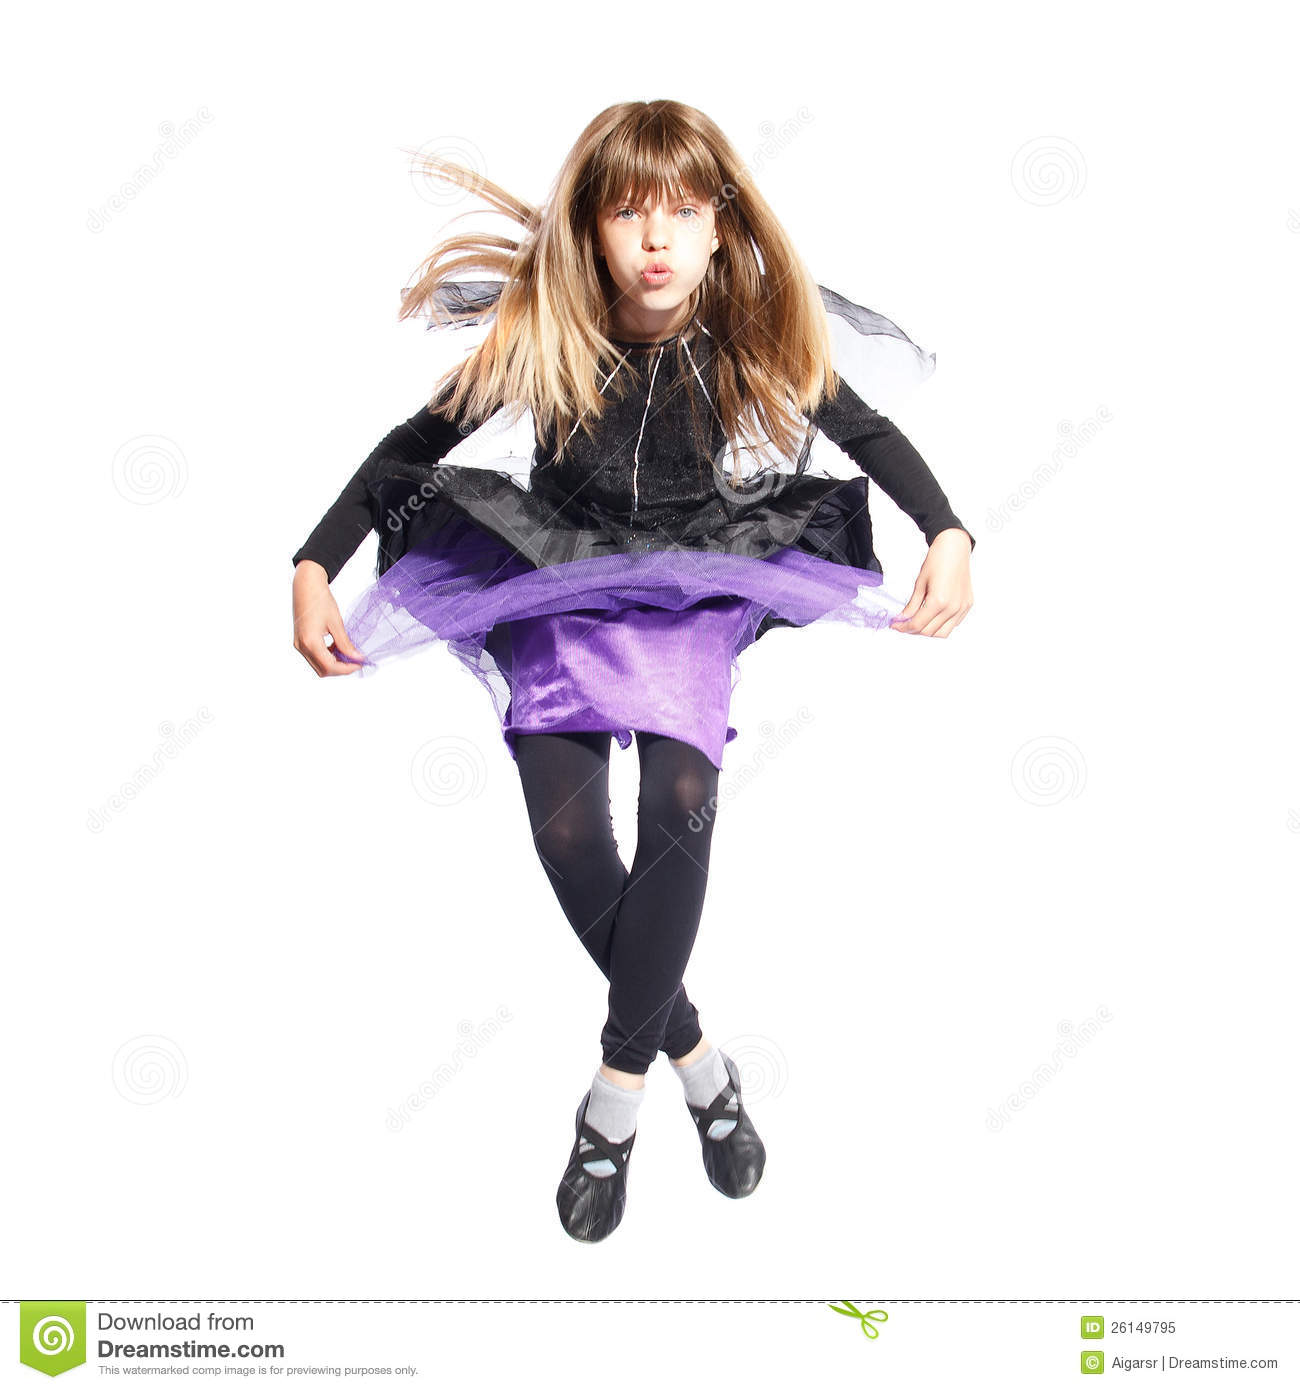 Download Jumping Girl In Bat Costume Stock Image - Image of image girl 26149795  sc 1 st  Dreamstime.com & Jumping Girl In Bat Costume Stock Image - Image of image girl: 26149795